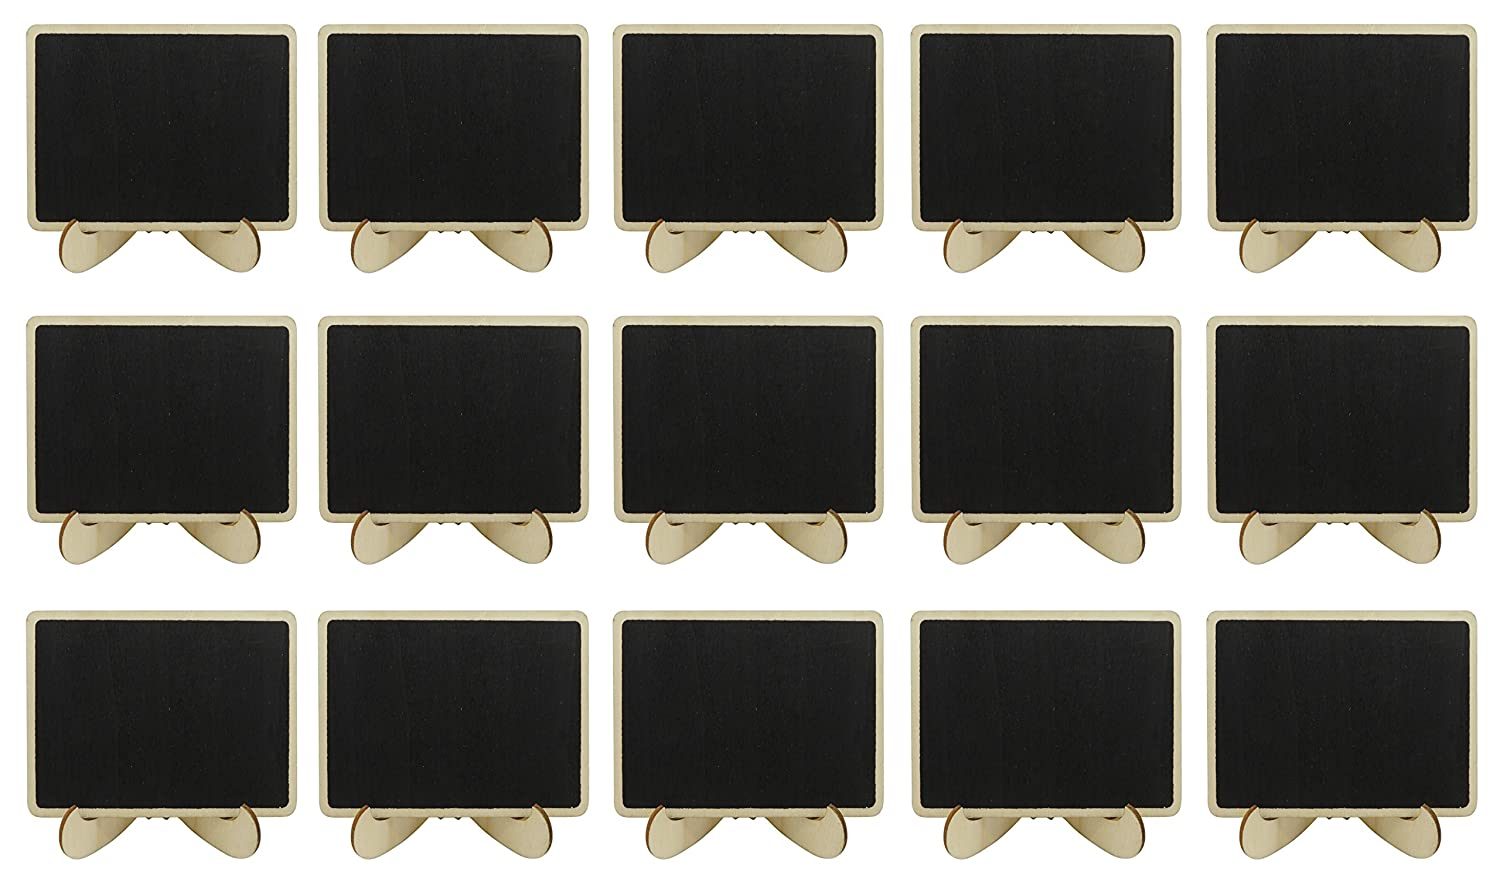 DODOGA 15pcs Mini Chalkboards Signs with Easel Stand, Wood Small Chalkboard Signs Place Cards for Weddings, Parties, Table Top Numbers, Food Signs and Decorating Signs